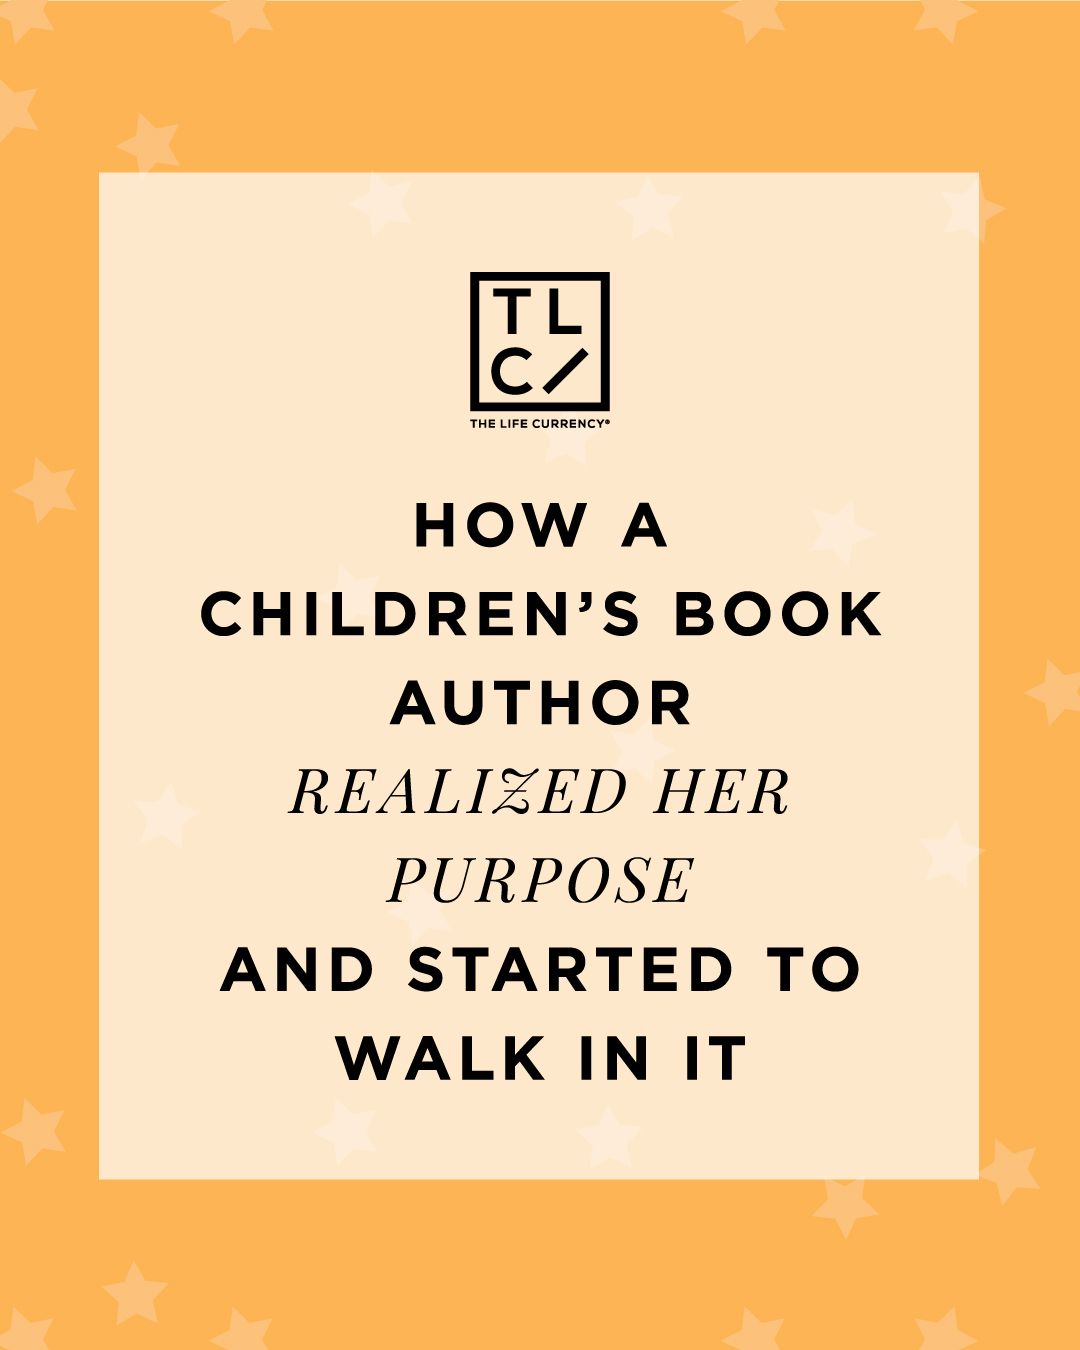 How a Children's Book Author Realized Her Purpose and Started to Walk in It